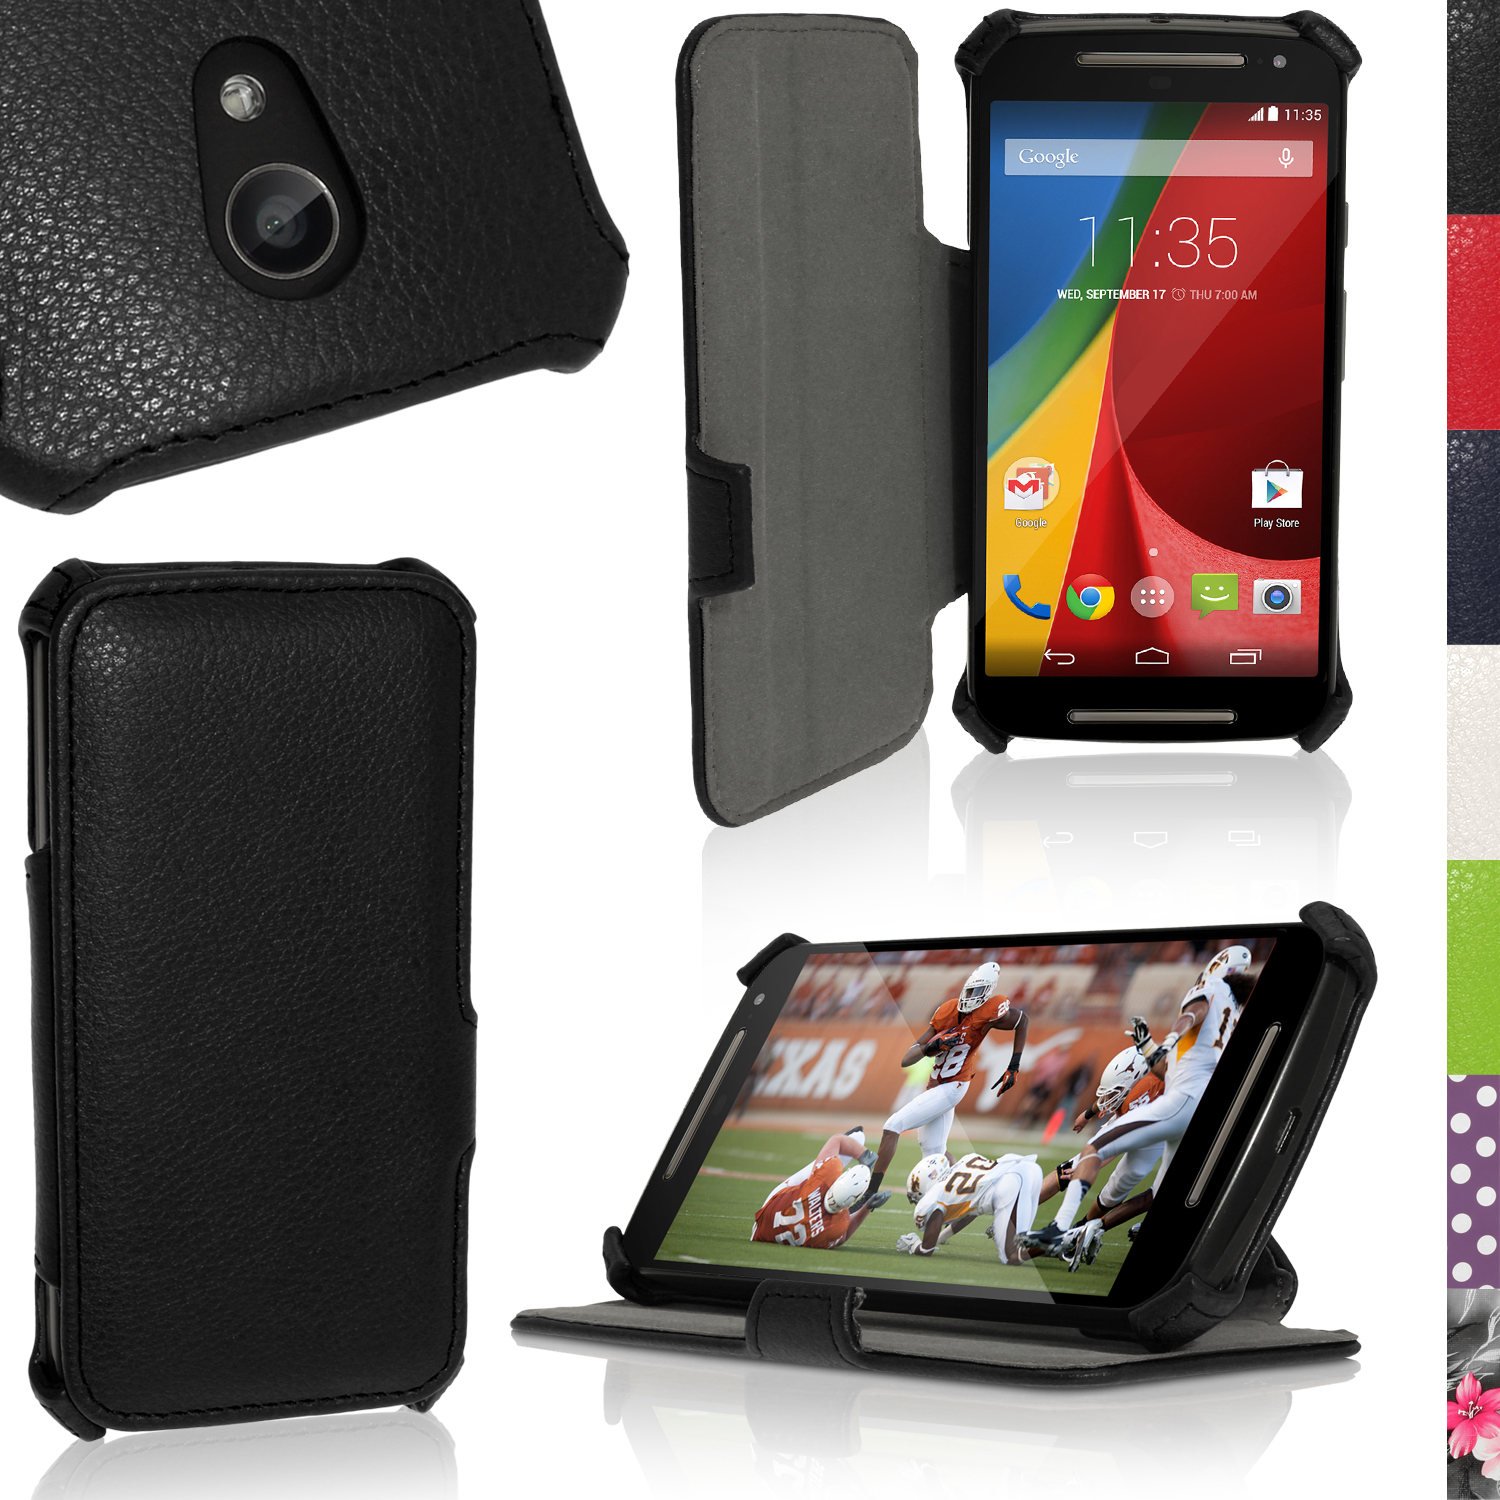 promo code f2ed9 b709d Details about PU Leather Skin Stand Case for Motorola Moto G 2nd Gen XT1068  Flip Book Cover